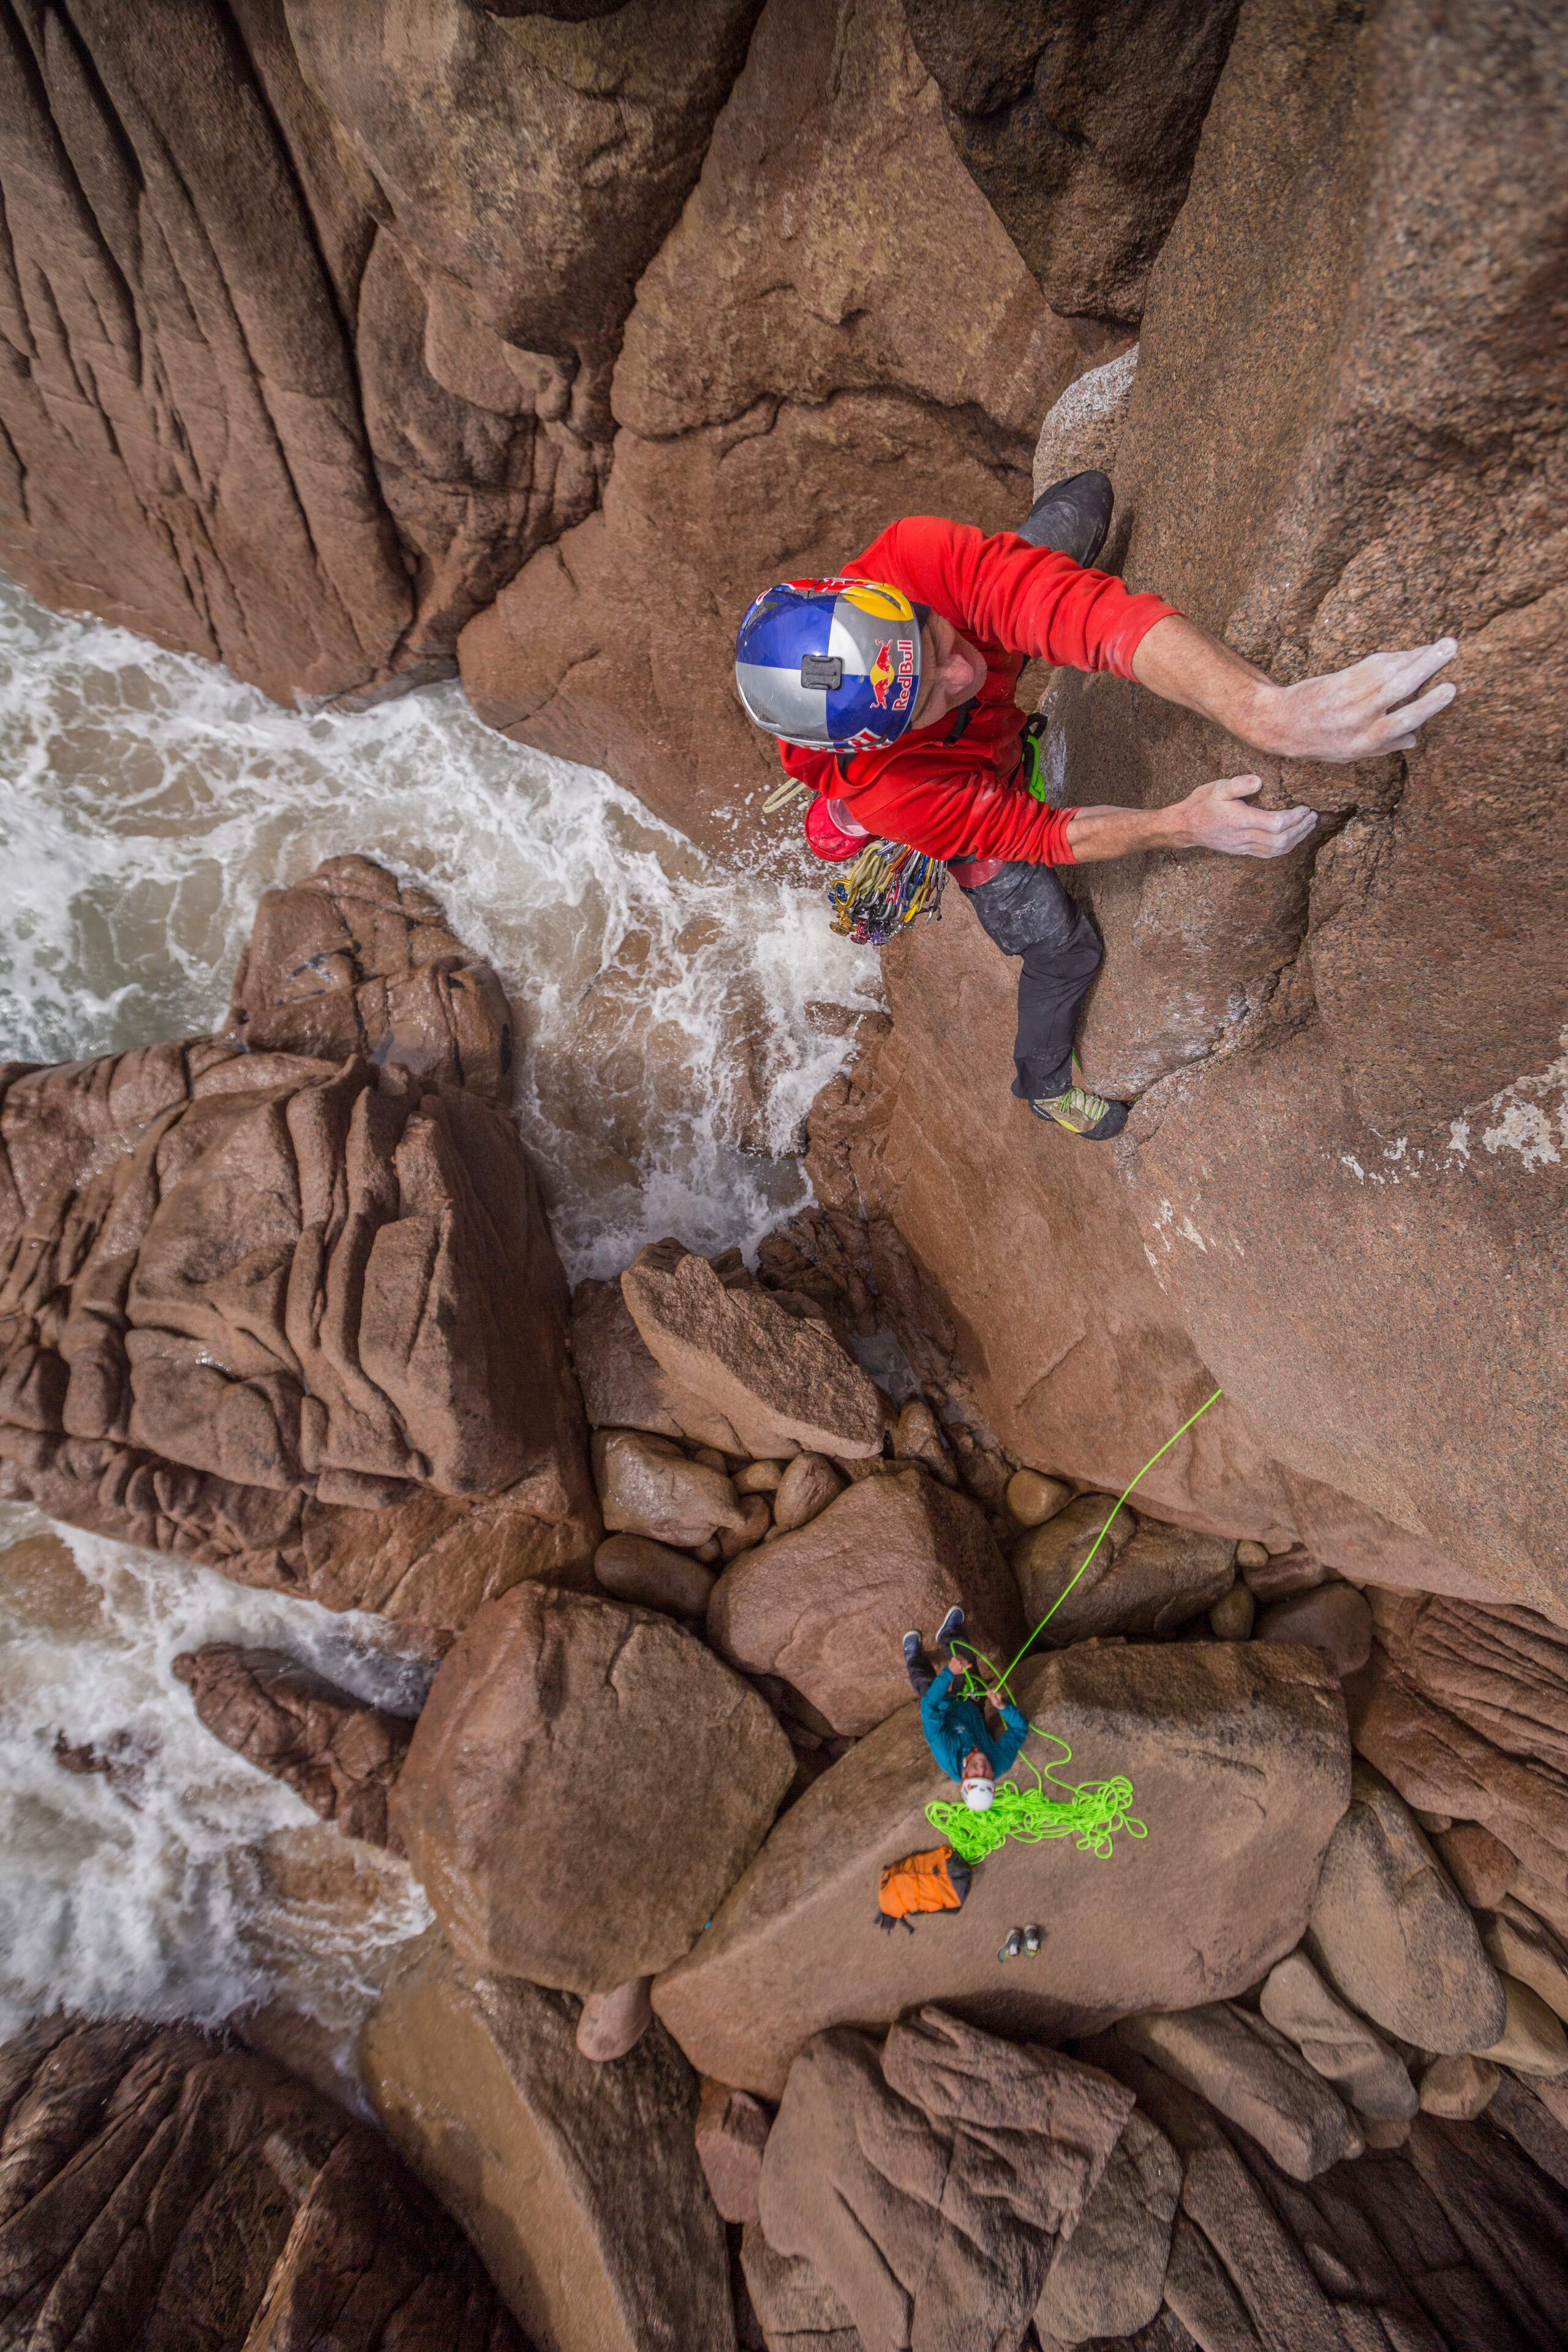 undefined John Price / Red Bull Content Pool Will Gadd climbs new routes on Irish sea stacks in Donegal, Ireland, on 23 March, 2020.John Price / Red Bull Content Pool